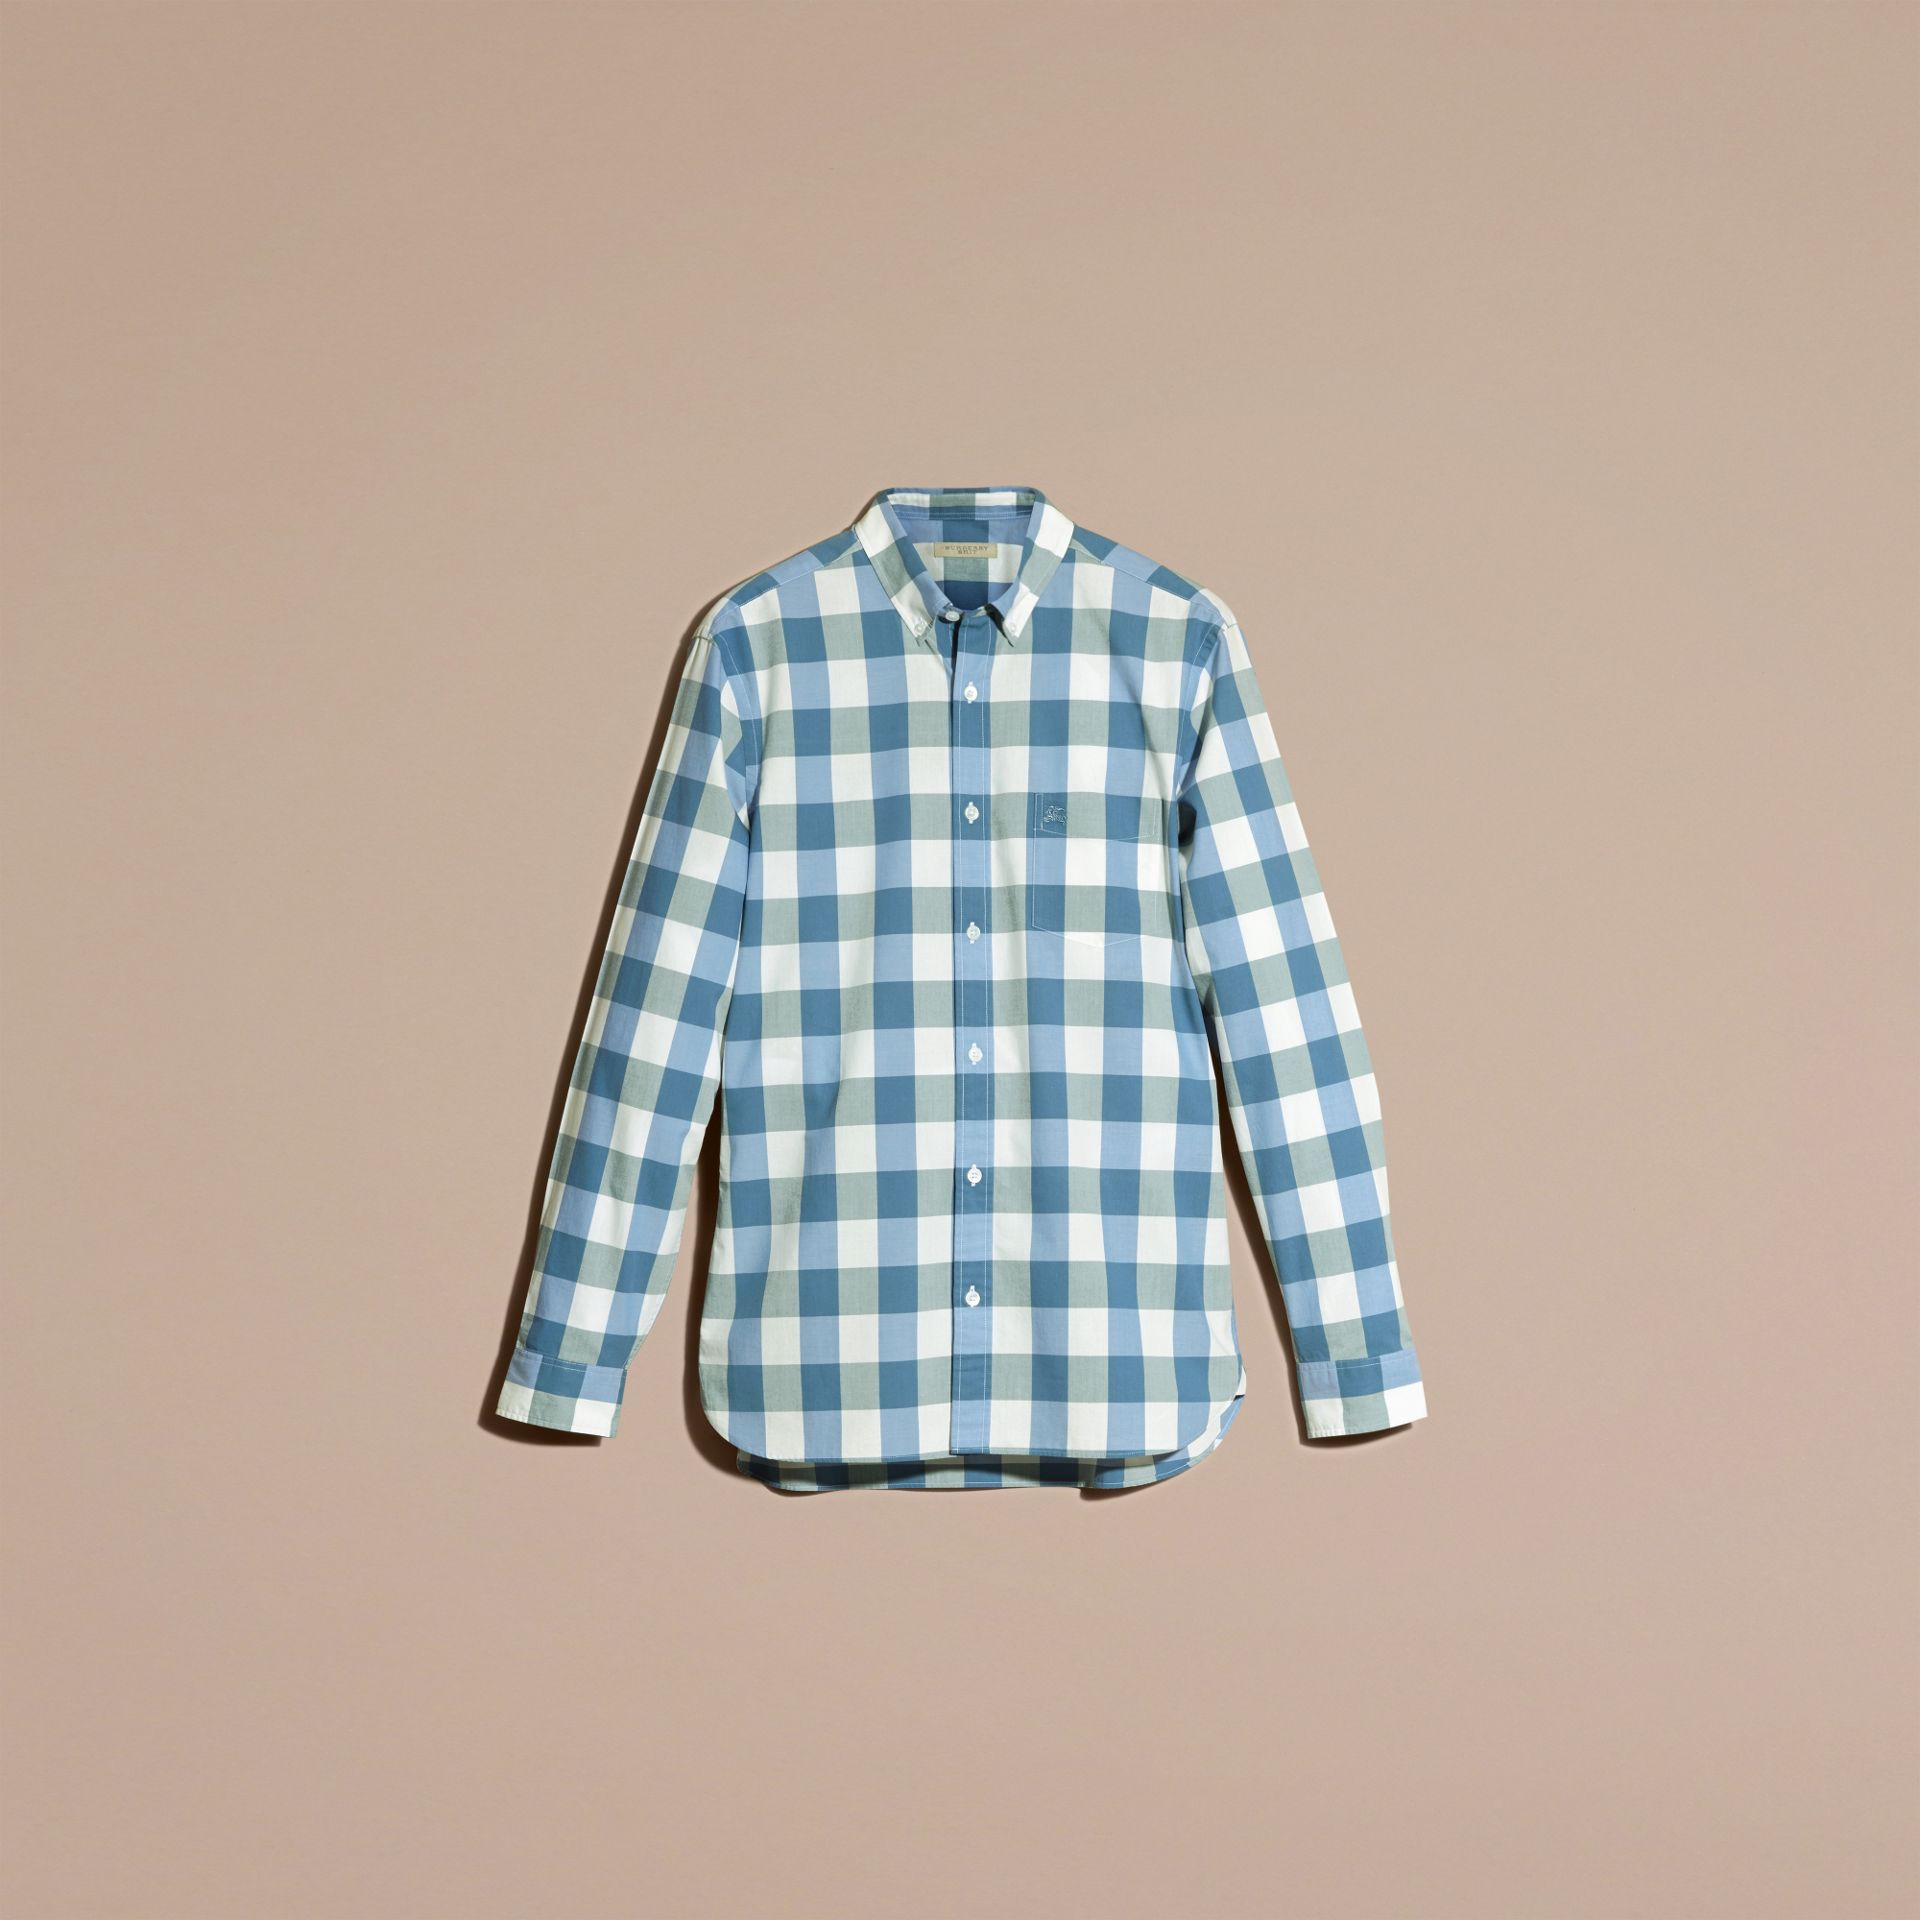 Blu ortensia intenso Camicia vichy in cotone con colletto button-down Blu Ortensia Intenso - immagine della galleria 4